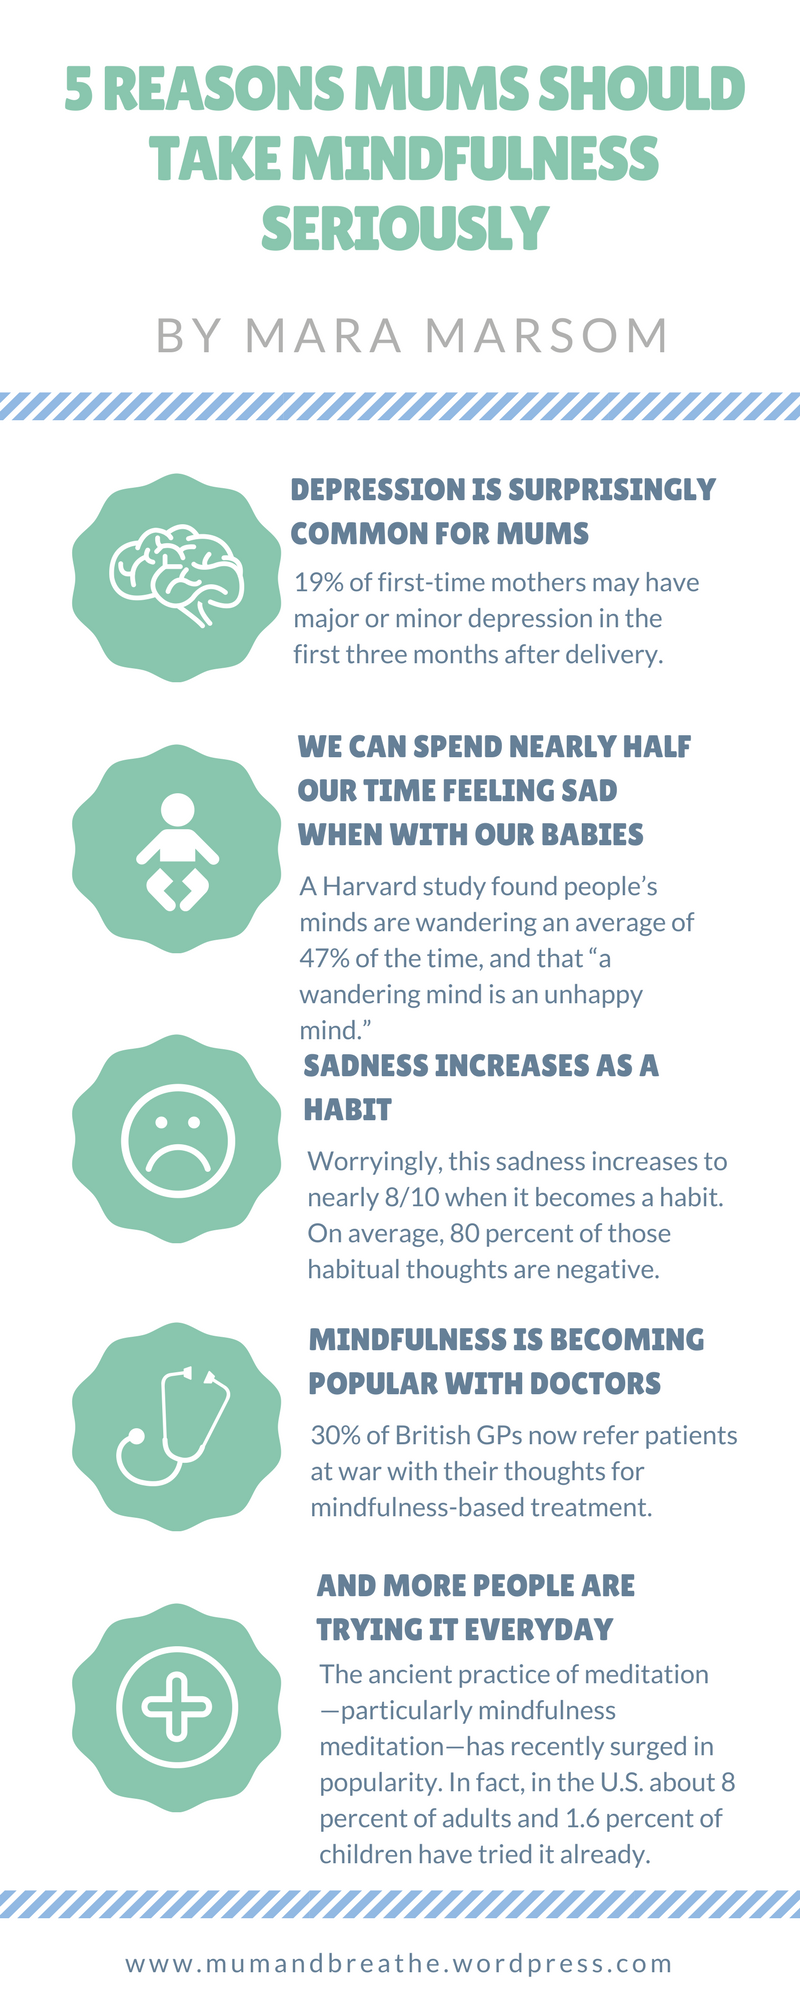 Copia de Copia de Copia de 5 REASONS TO TAKE MINDFULNESS SERIOUSLY FOR KIDS.png